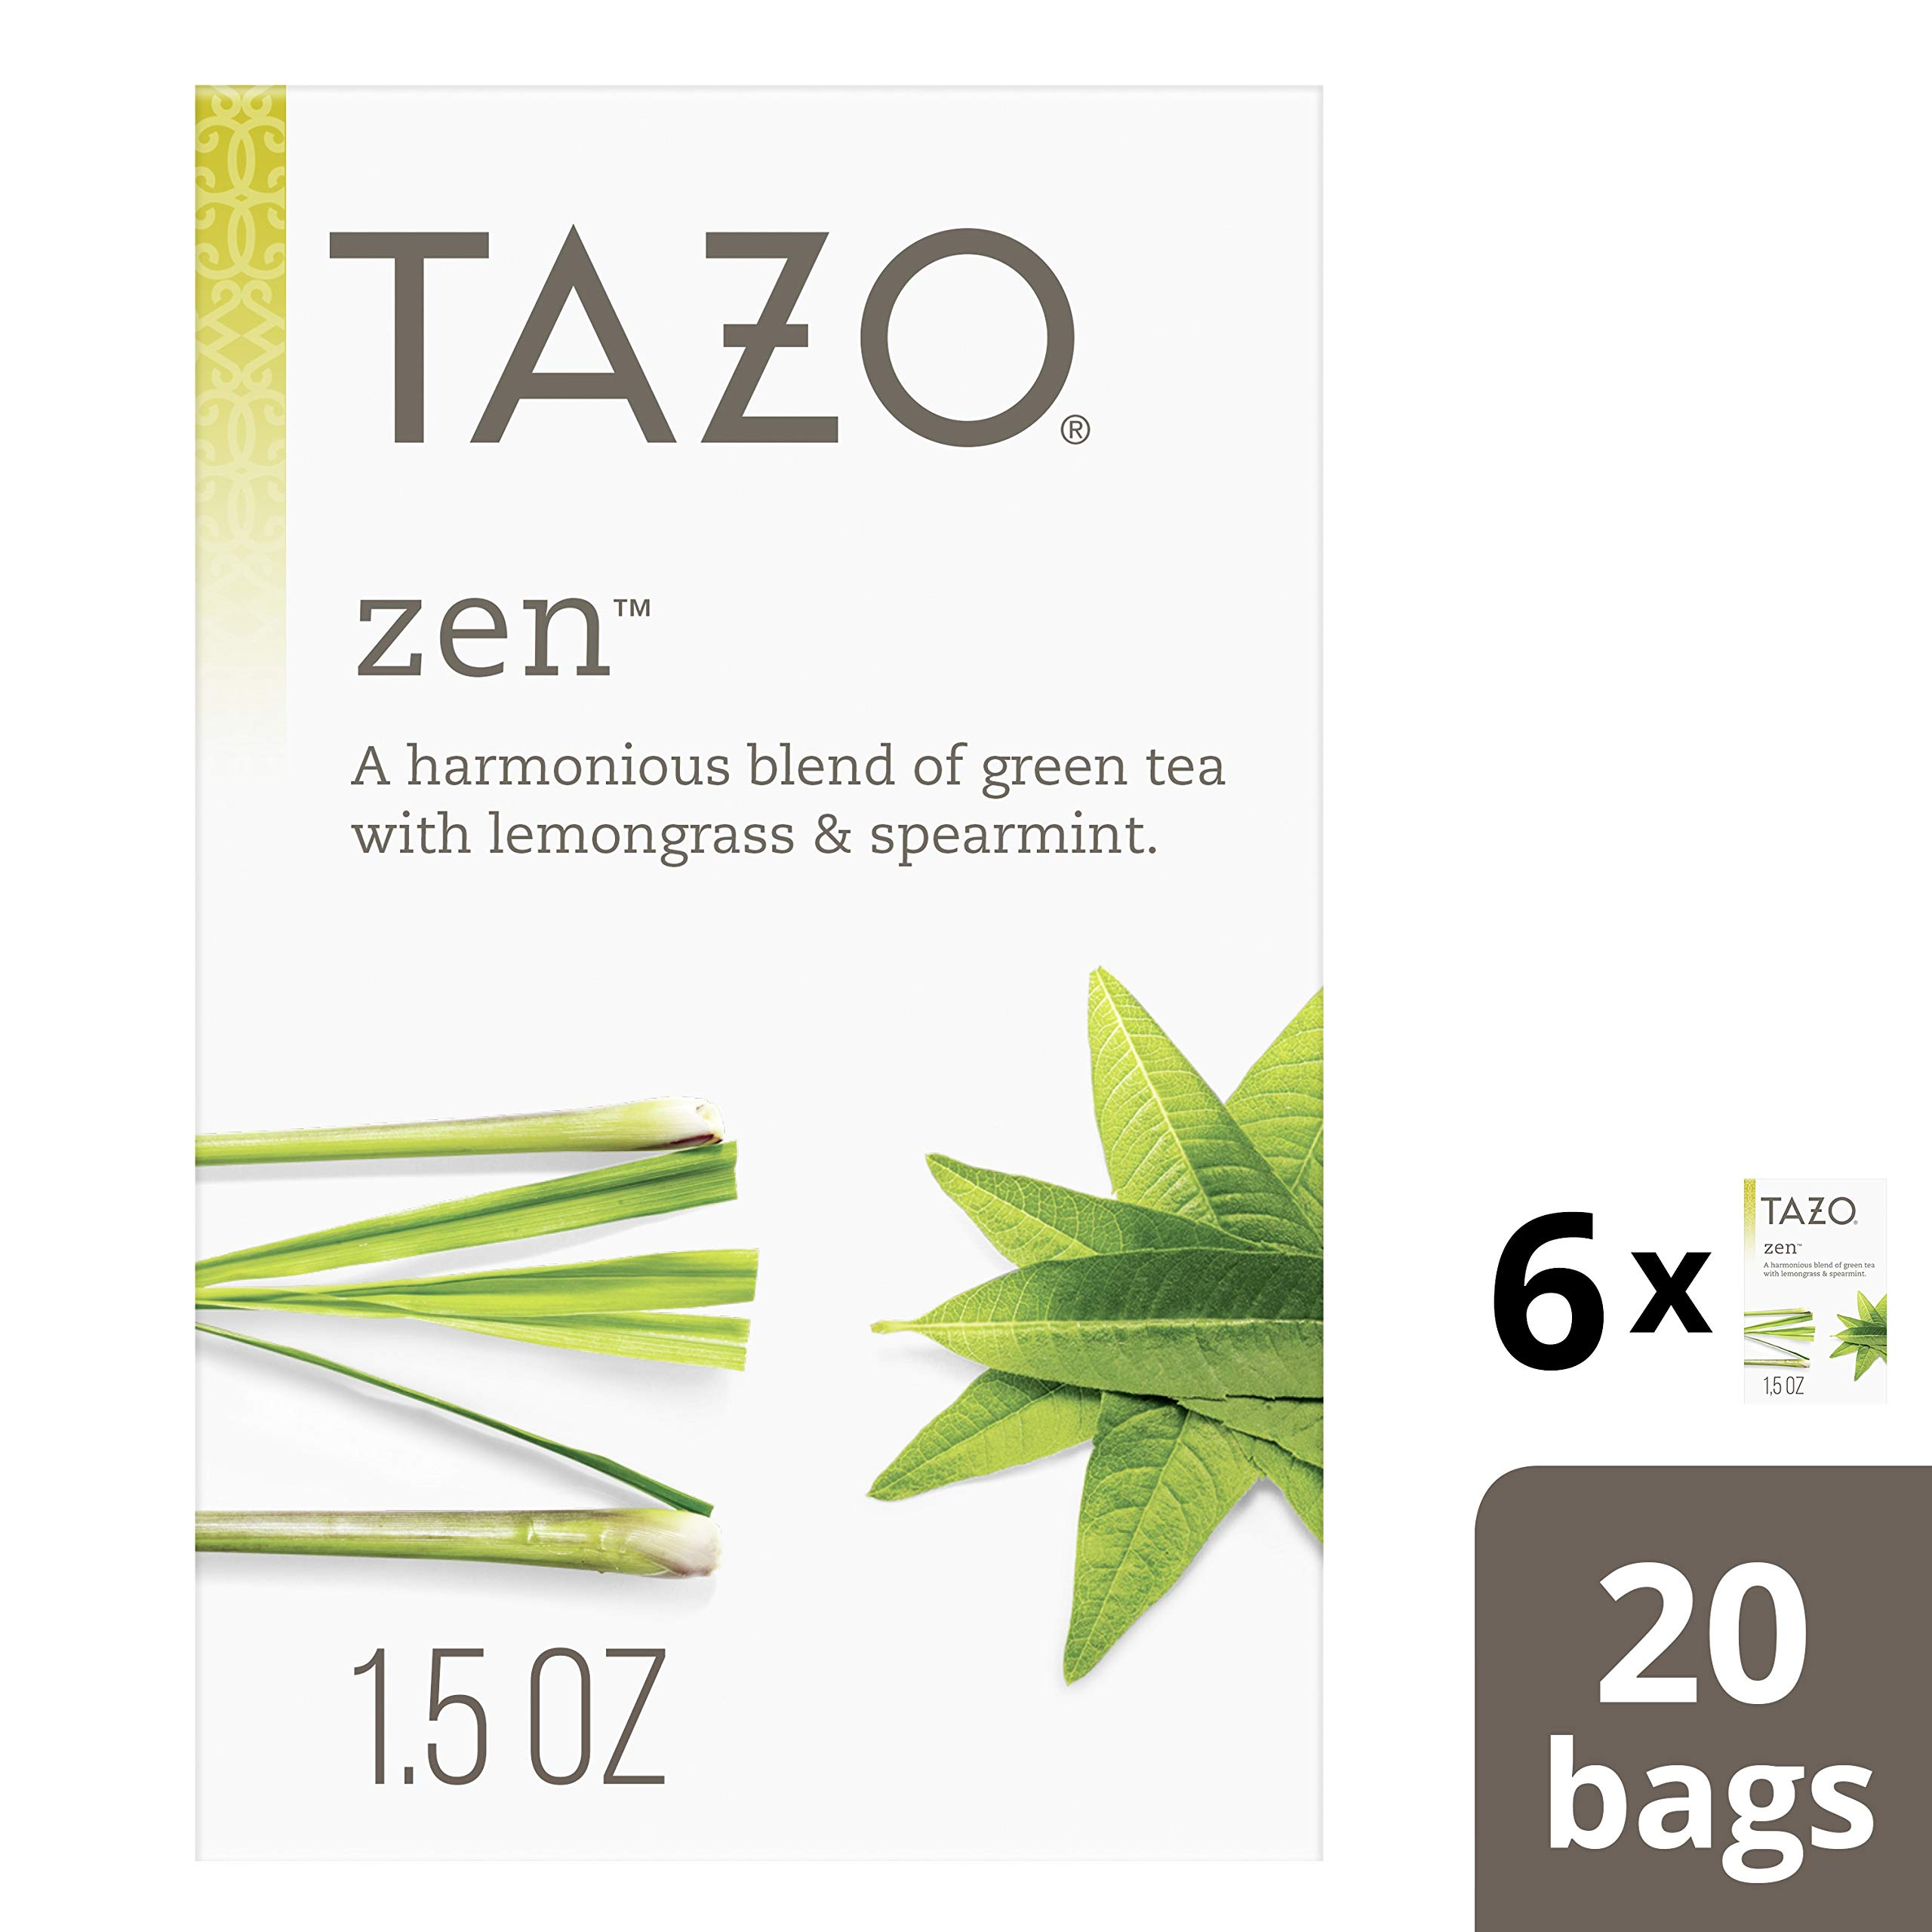 Tazo Zen Green Tea Bags for an invigorating cup of green tea Zen Tea, 20 Count, Pack of 6 by Tazo